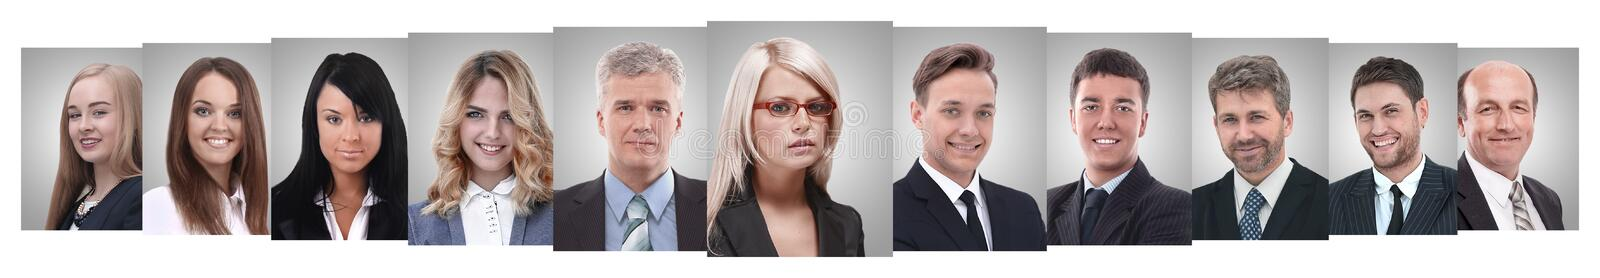 Panoramic collage of portraits of successful business people royalty free stock photography